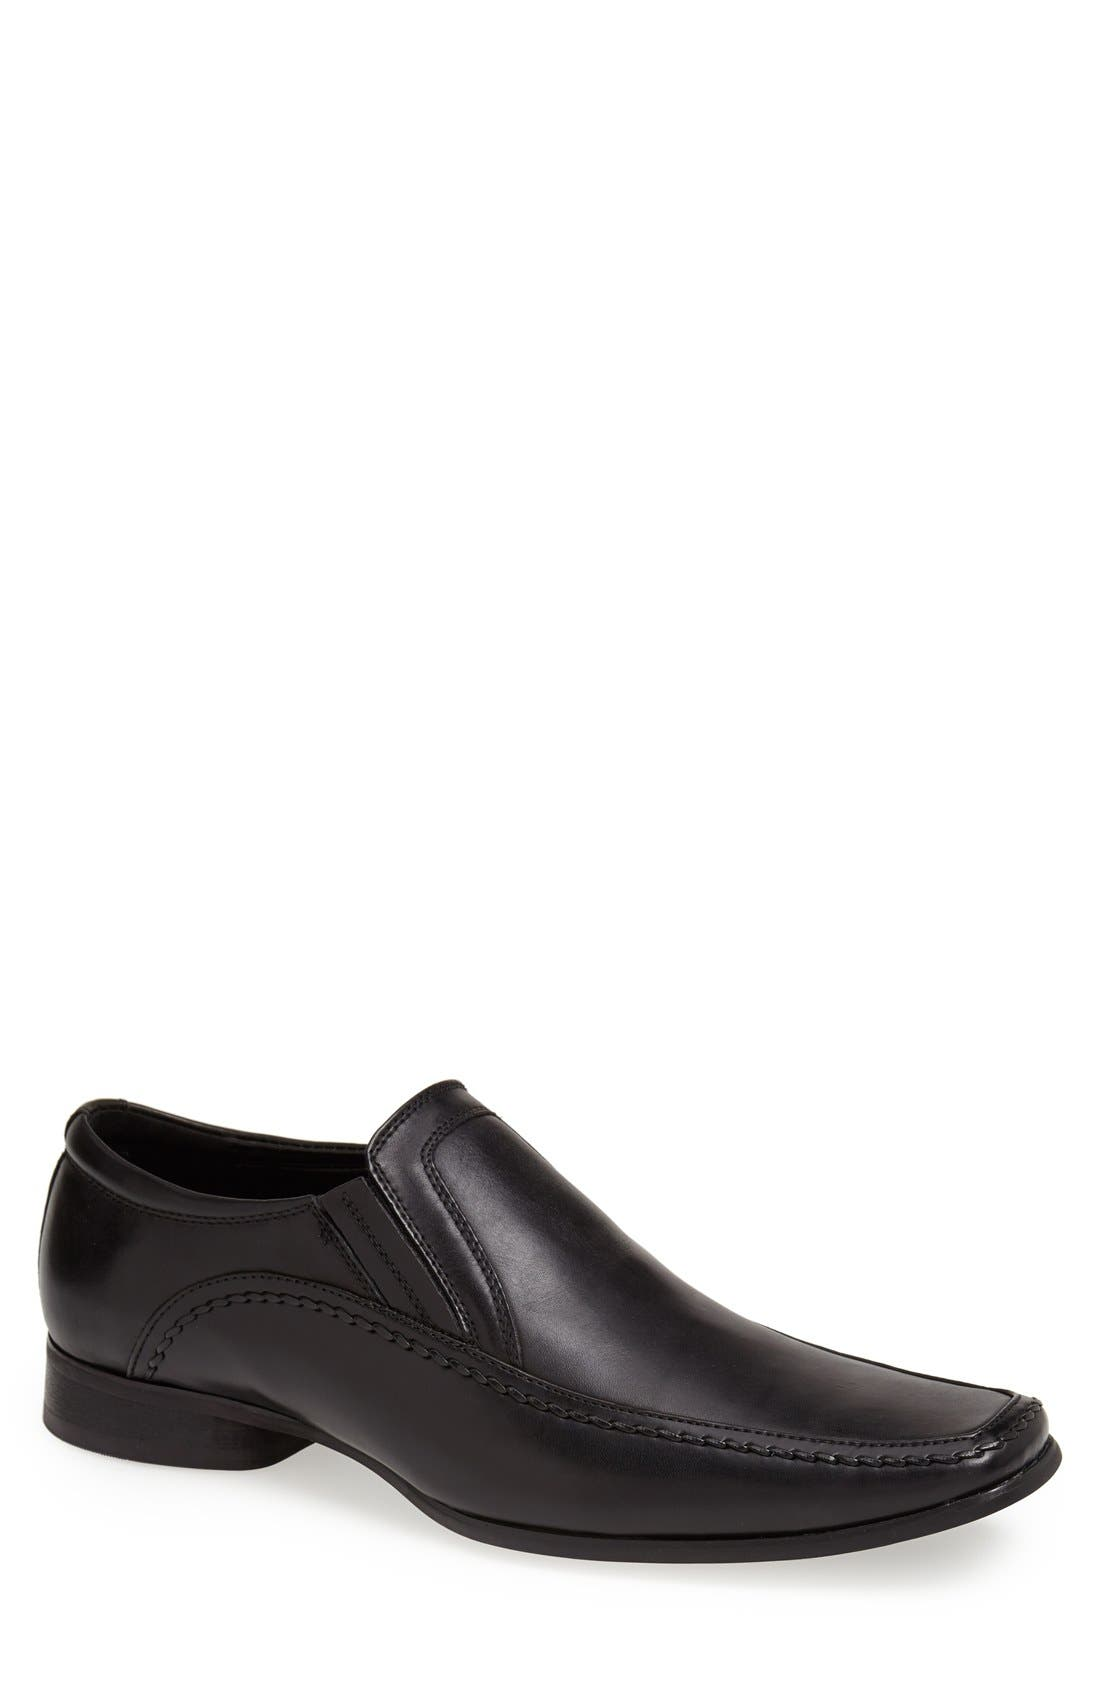 Main Image - Reaction Kenneth Cole 'Key Note' Slip-On